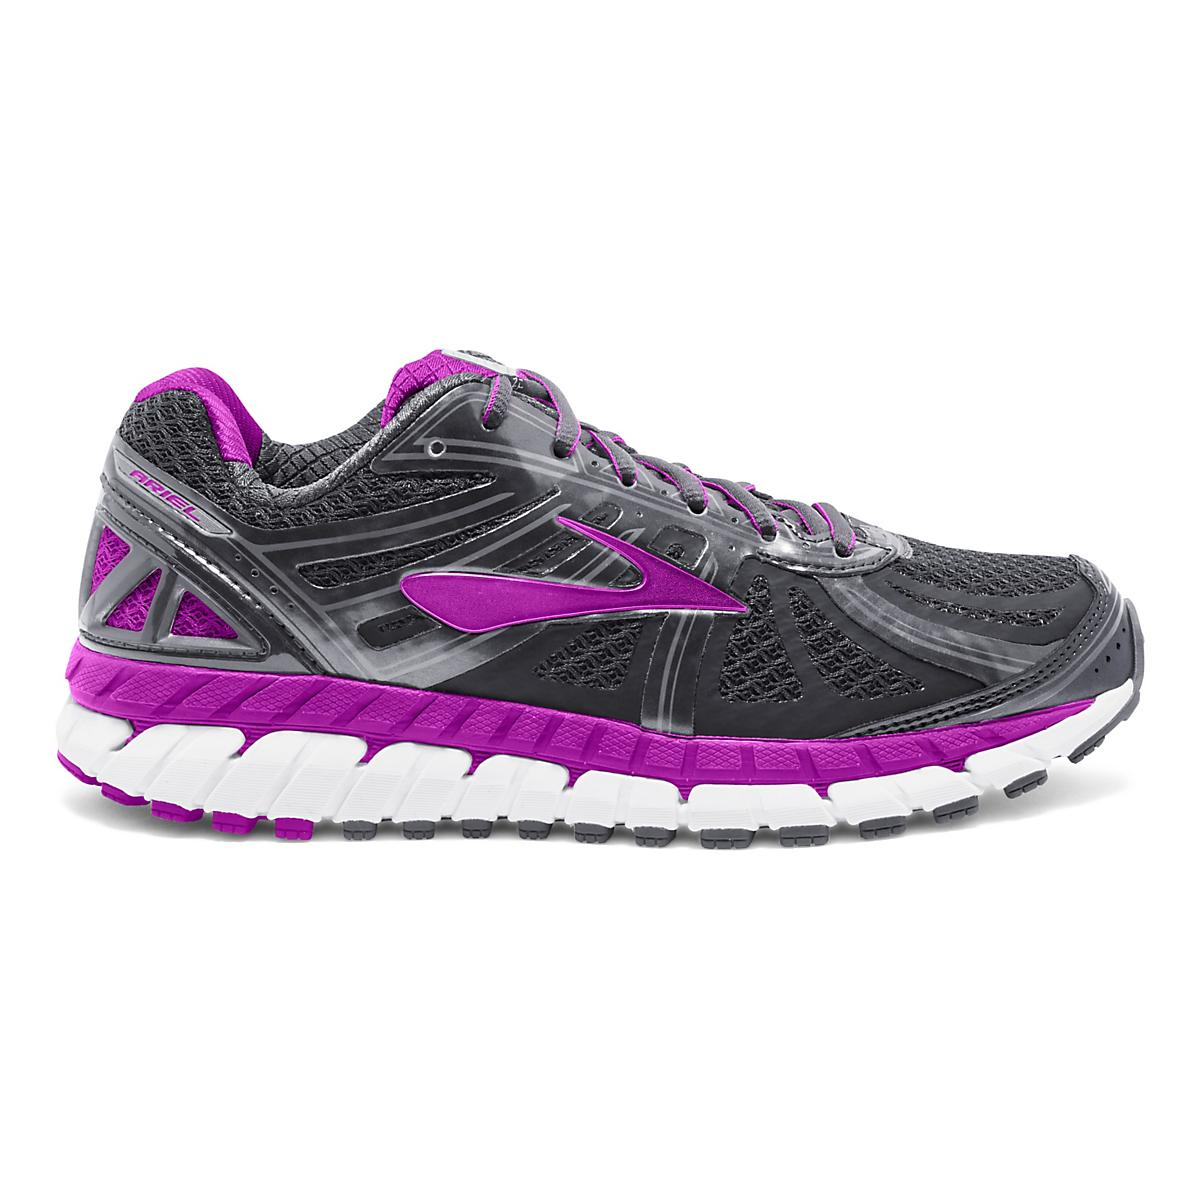 2222897ed1b Brooks Ariel 16 Running Shoes for Women from Road Runner Sports